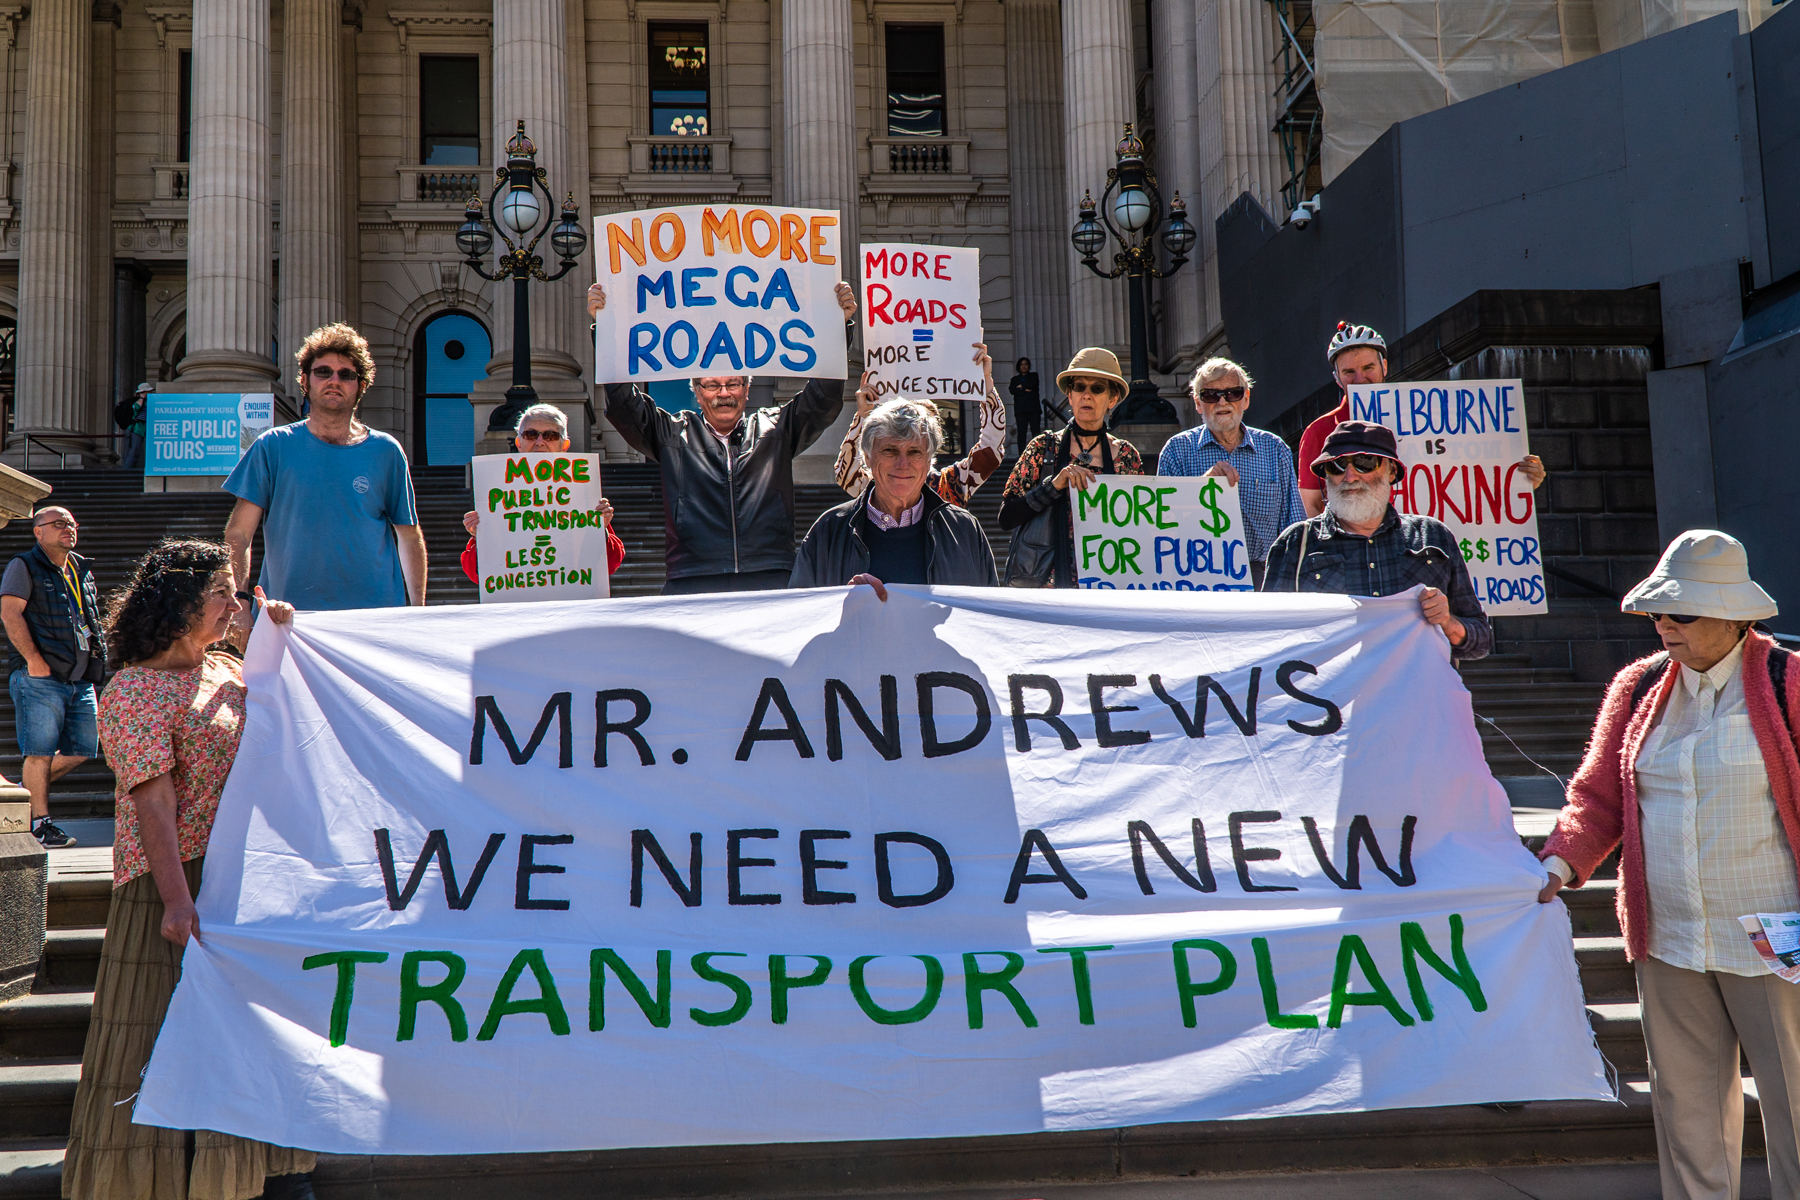 Sustainable Cities Friends of the Earth New Transport Plan Rally